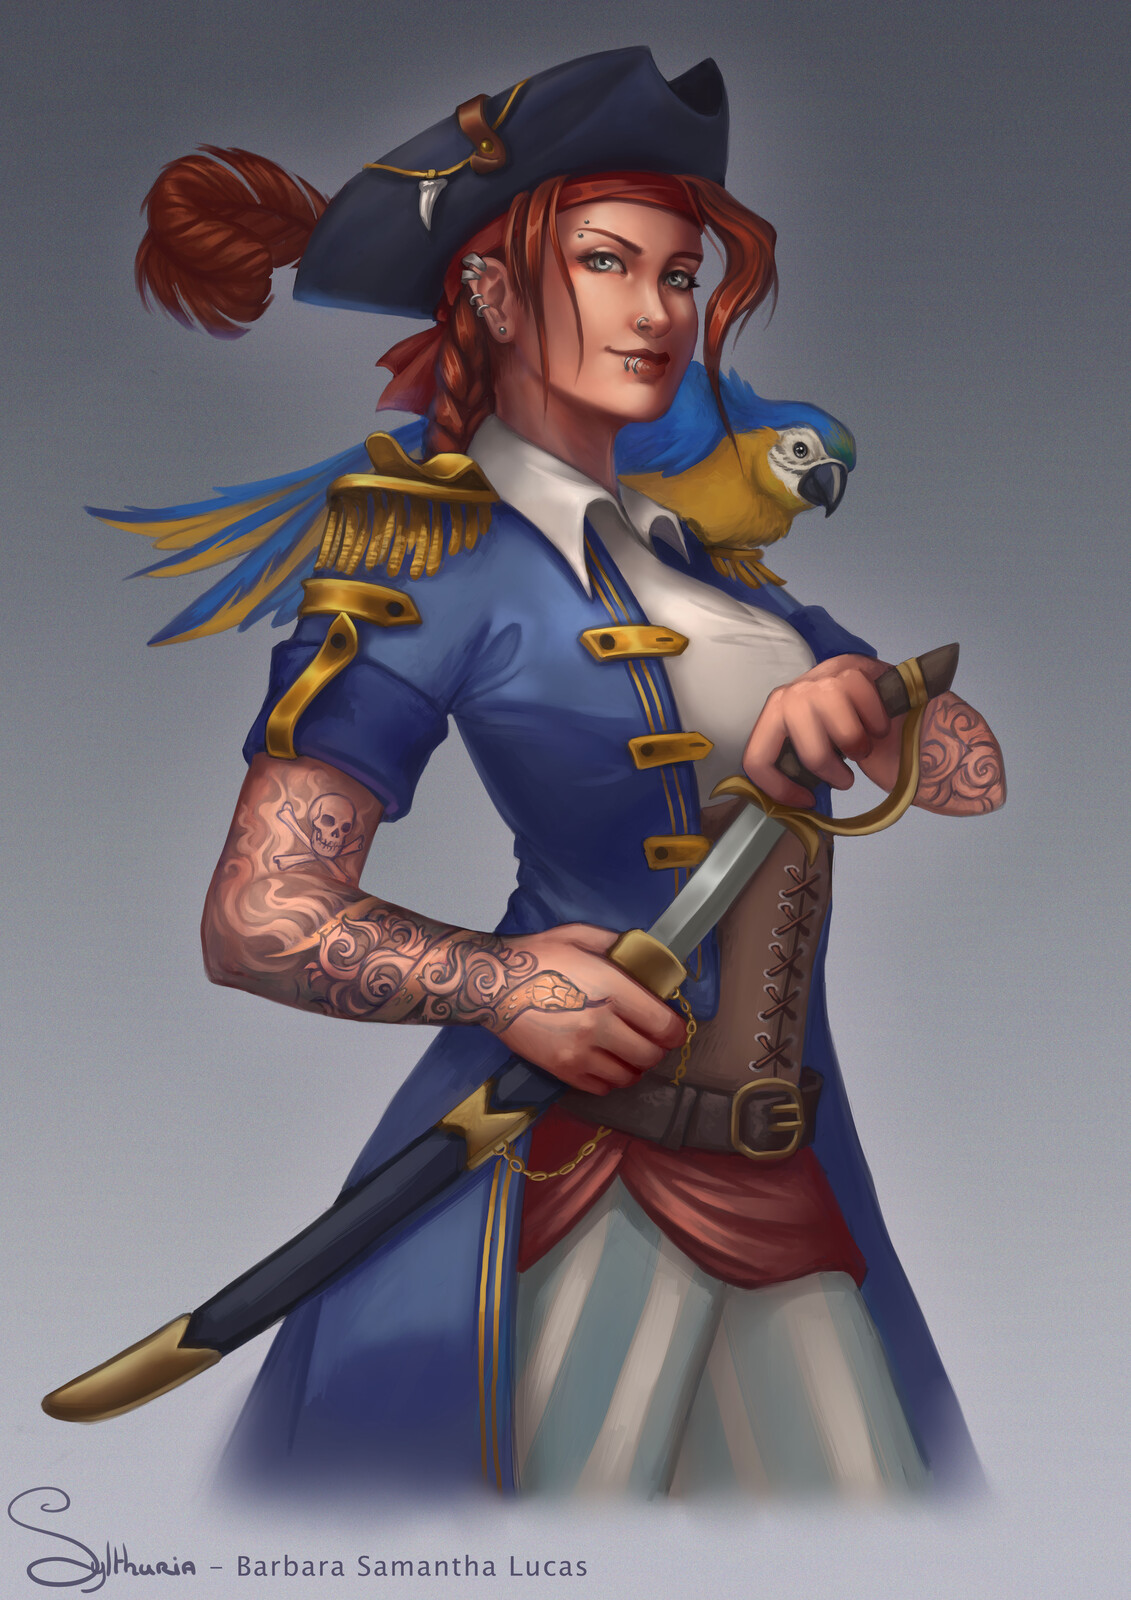 Pirate - Character Design